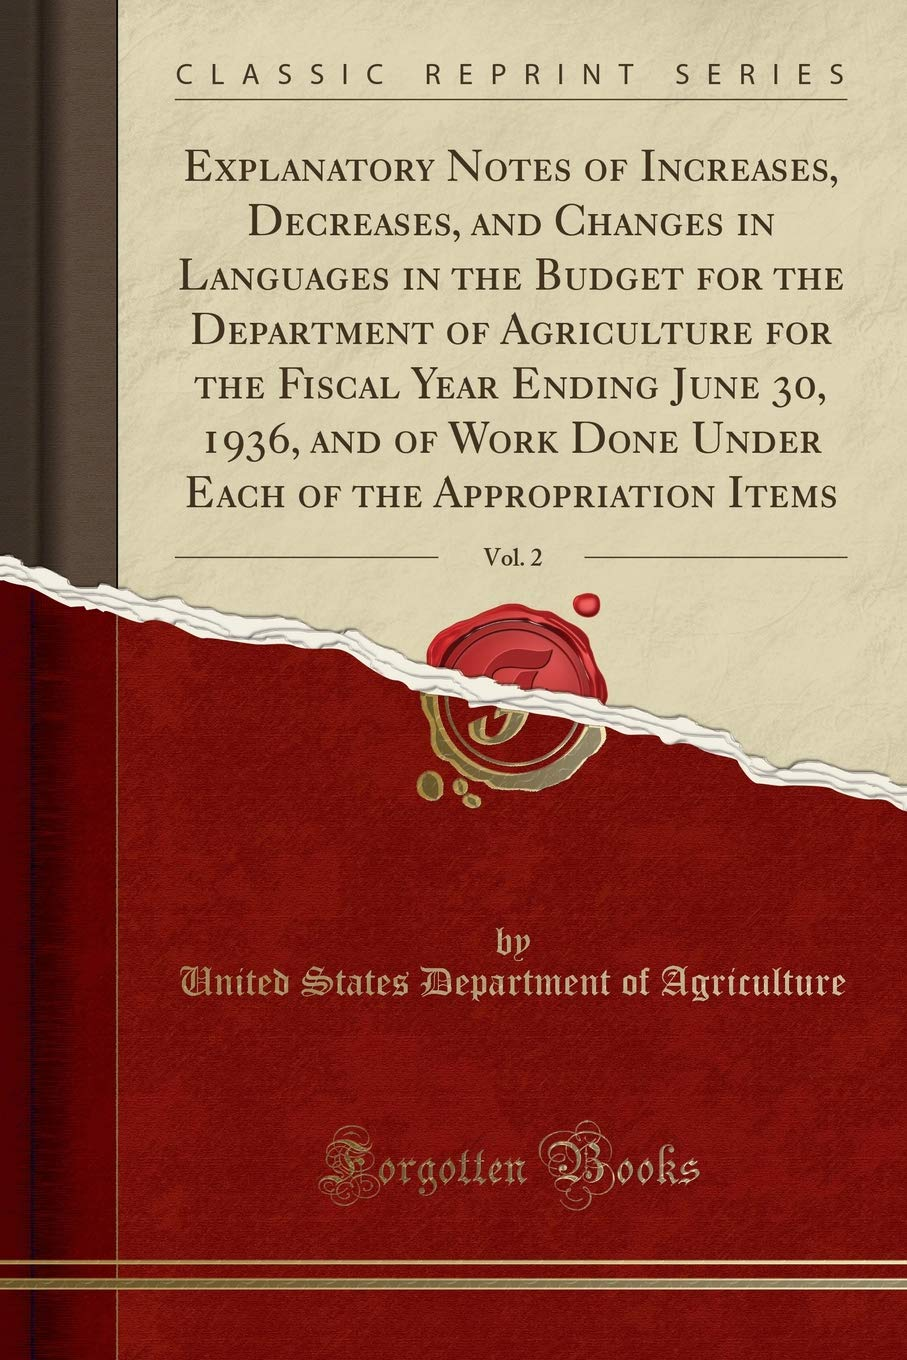 Explanatory Notes of Increases, Decreases, and Changes in Languages in the Budget for the Department of Agriculture for the Fiscal Year Ending June ... Appropriation Items, Vol. 2 (Classic Reprint)